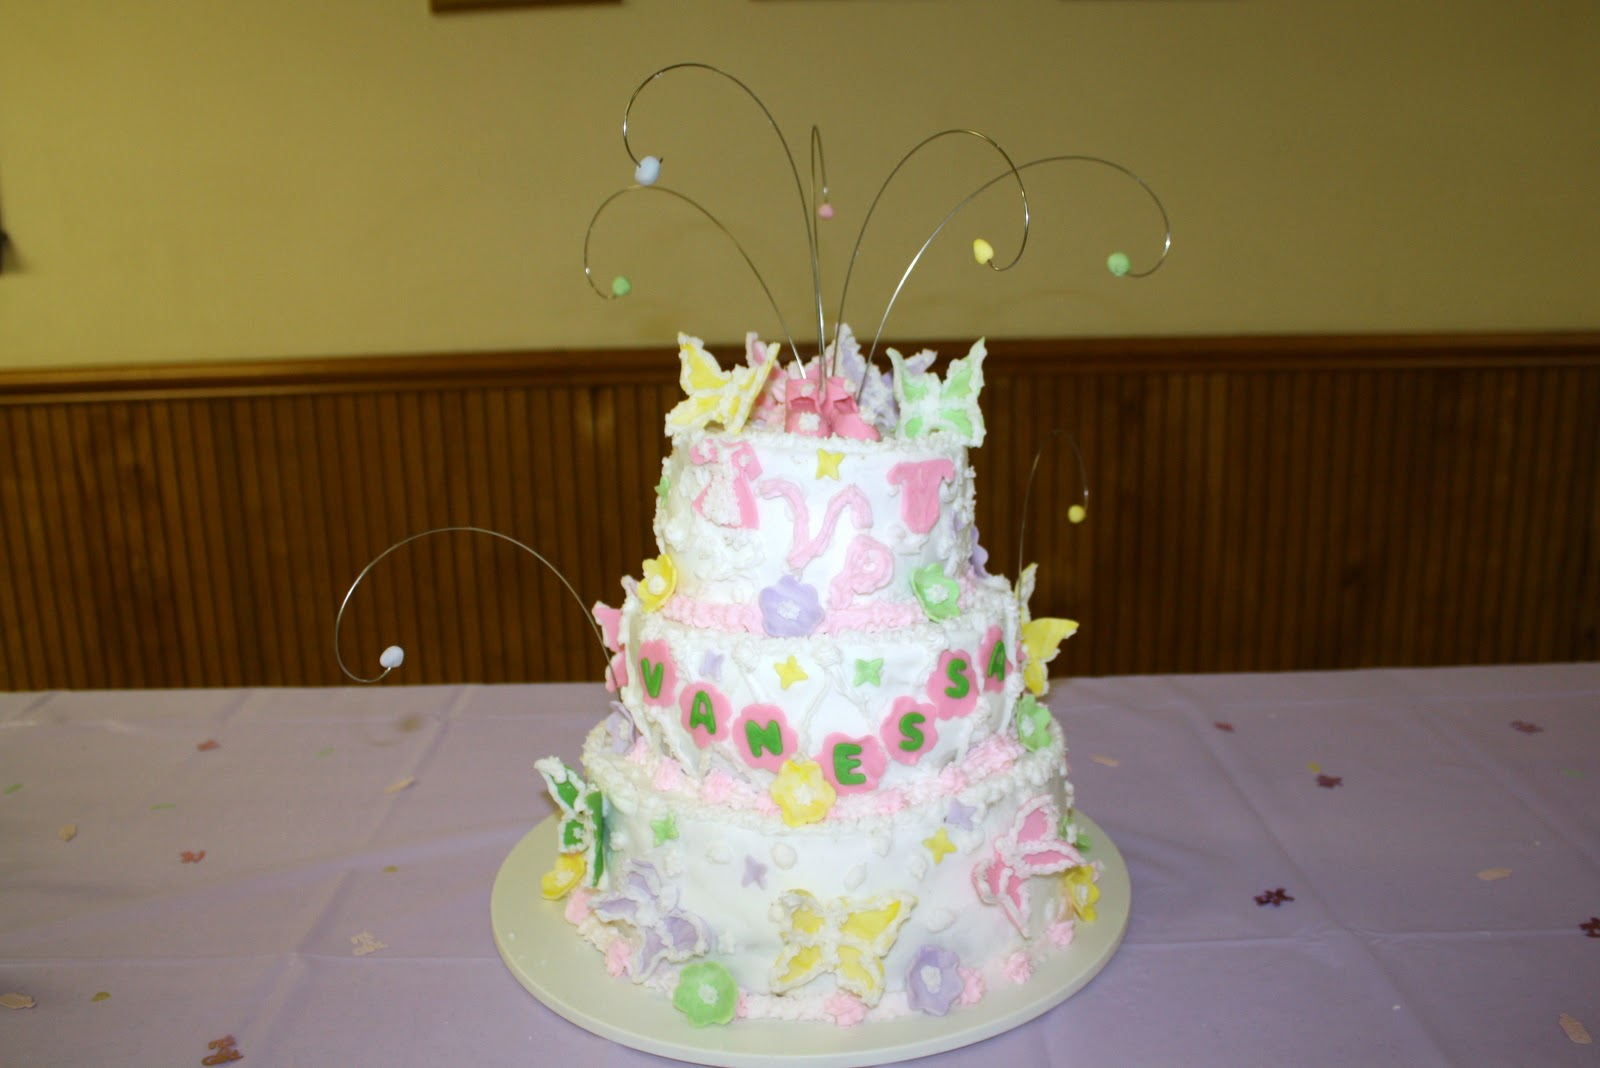 Butterfly Baby Shower Cake Images : teresa s sweet boutique: Butterfly baby shower cake.